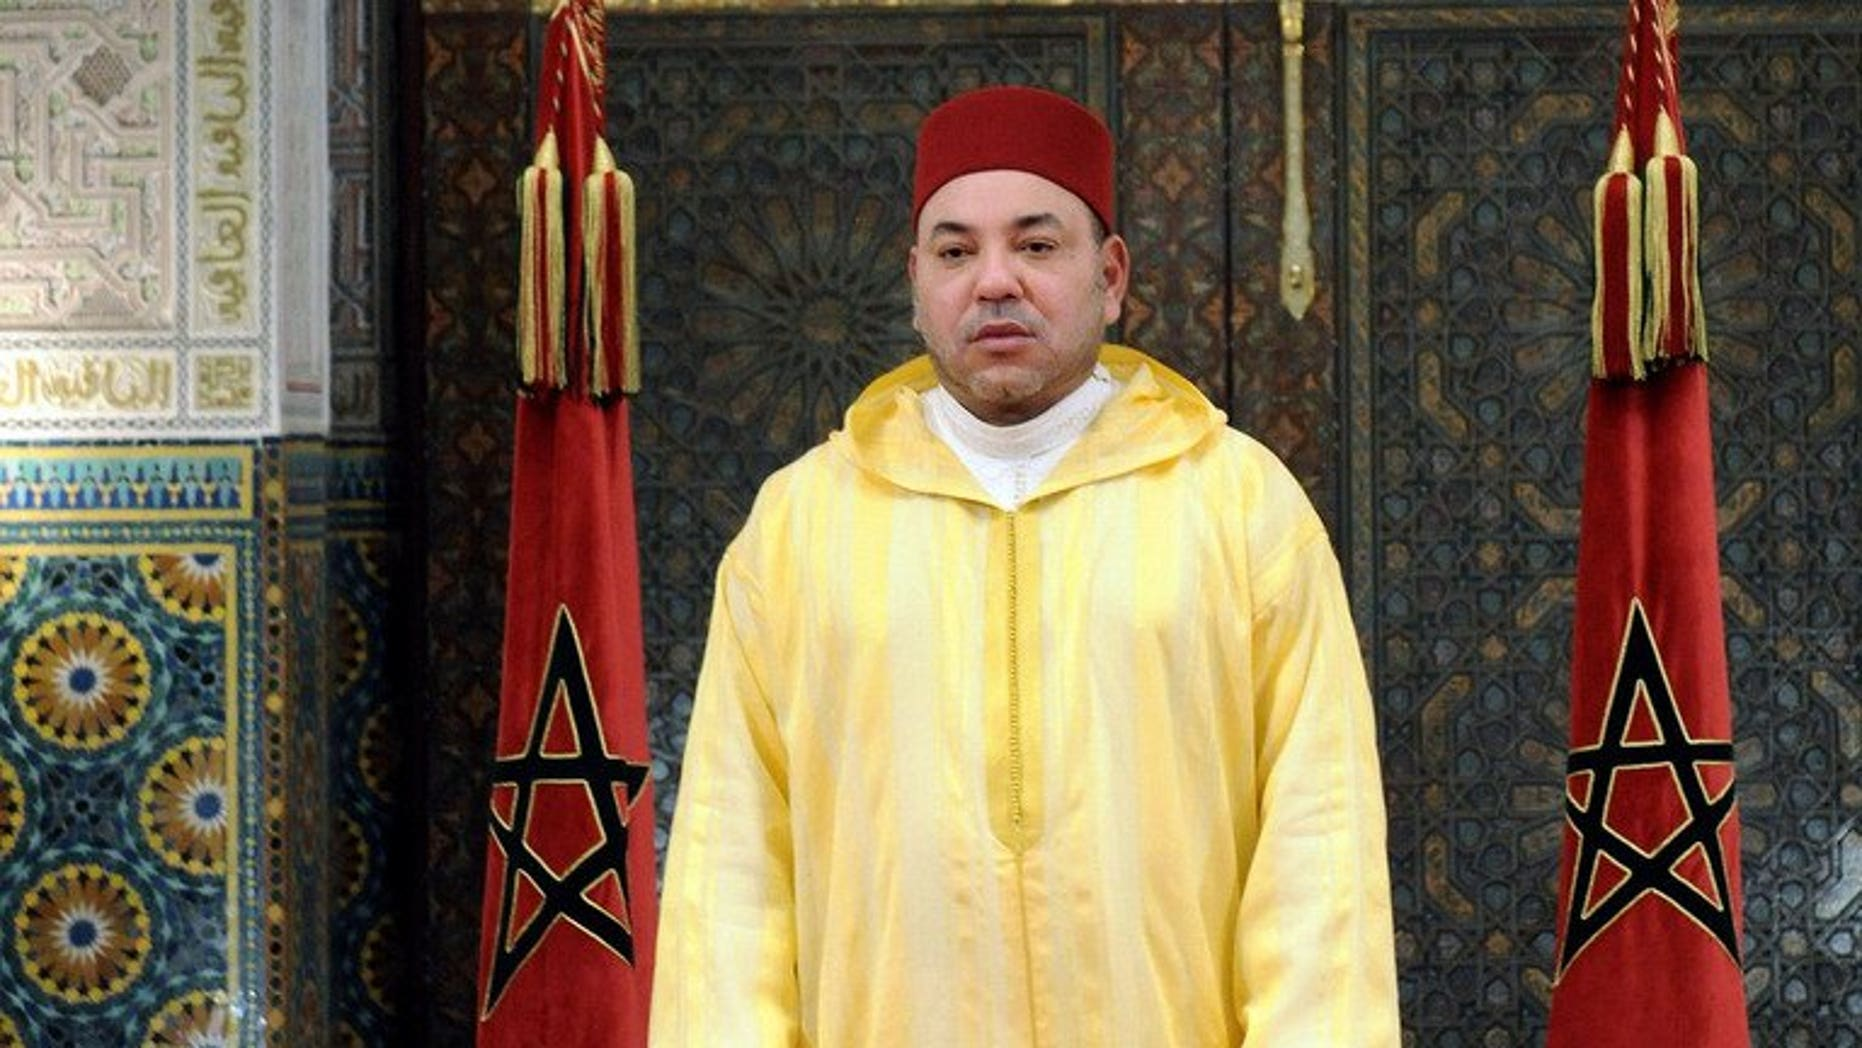 Handout photo released by Moroccan Press Agency shows King Mohammed VI on July 30, 2013 in Casablanca. King Mohamed VI of Morocco on Sunday revoked a pardon granted to a Spanish serial paedophile whose release sparked angry protests in the kingdom, a palace statement said.